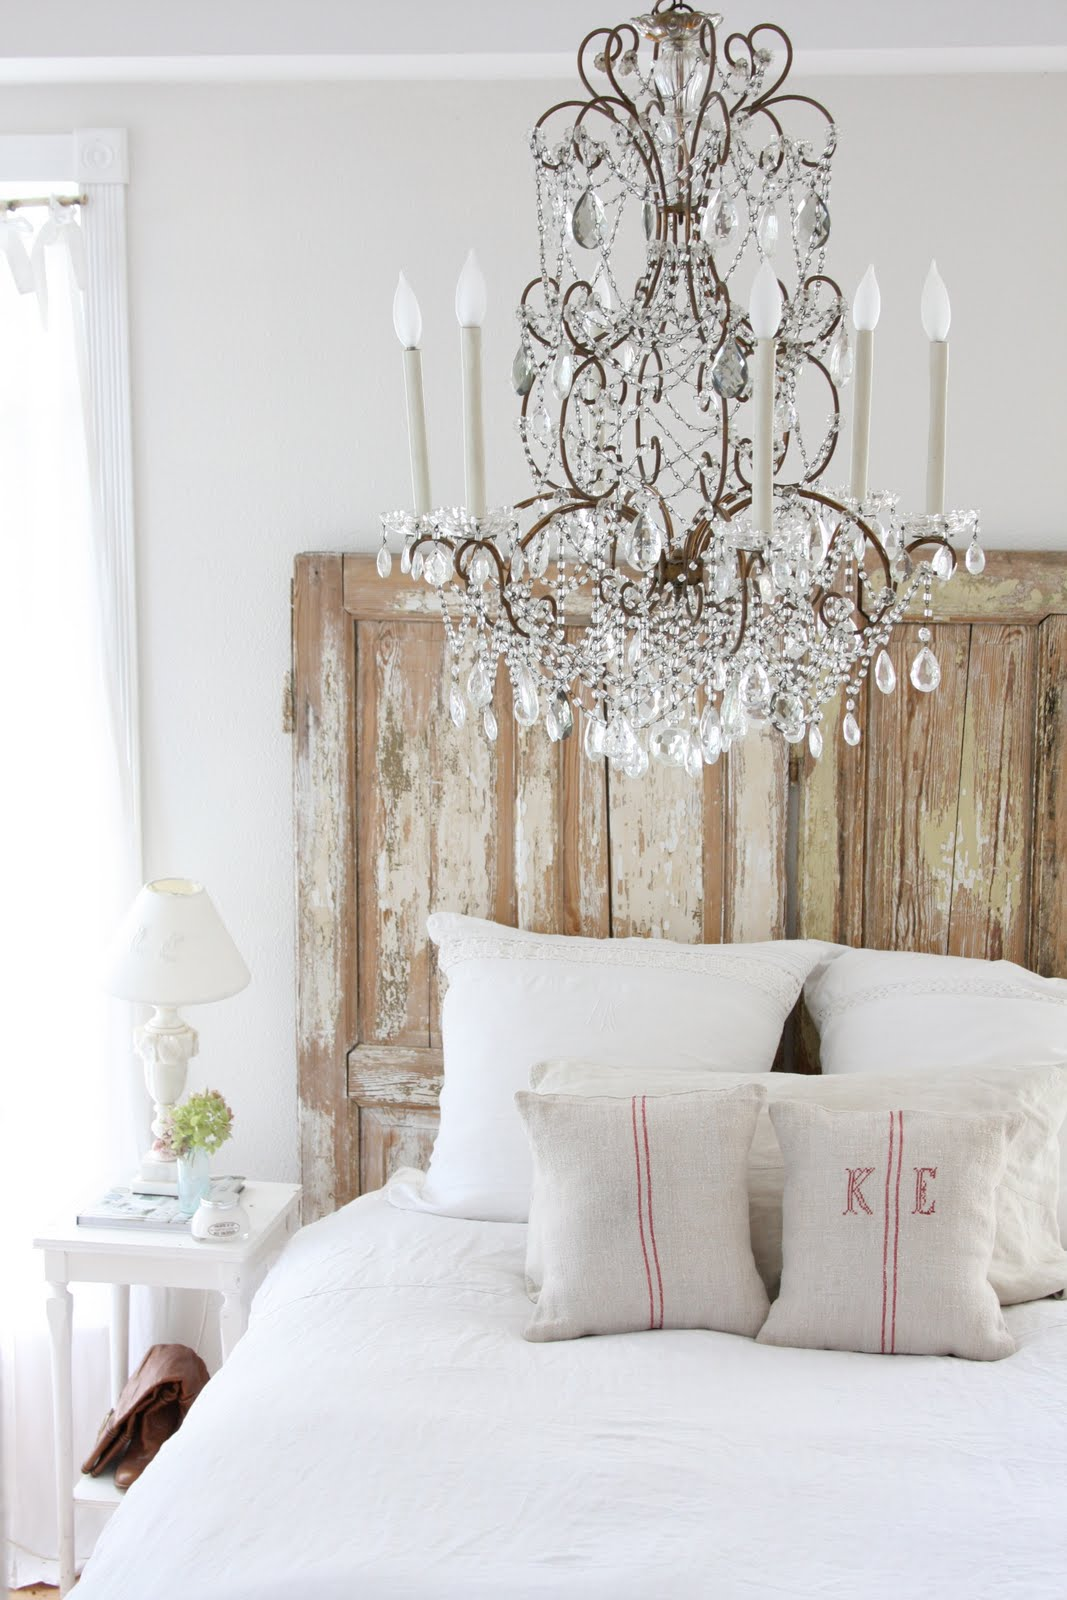 Old door headboard. - 34 DIY Headboard Ideas